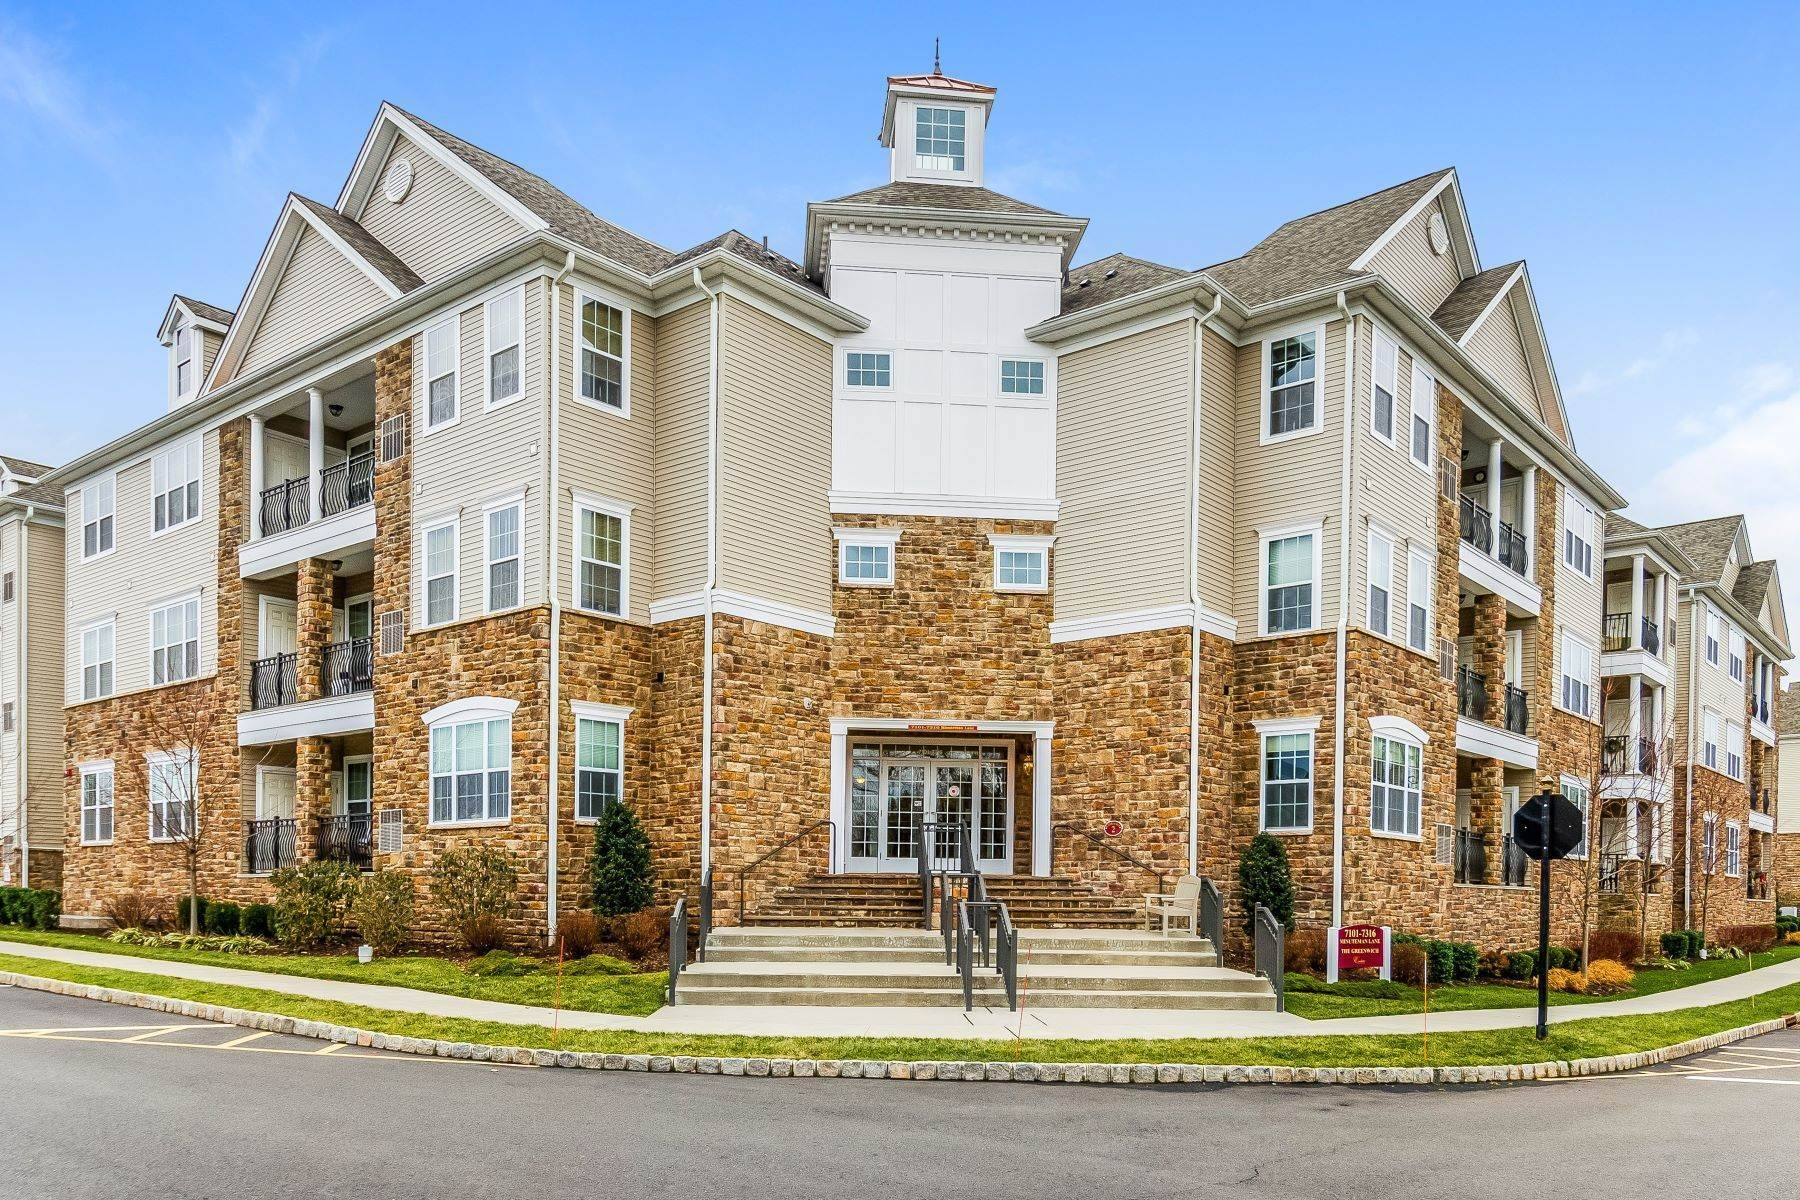 Condominiums للـ Sale في Luxury 55+ Condo With Rare, Exclusive Indoor Storage Room Included 7202 Minuteman Lane, Somerset, New Jersey 08873 United States